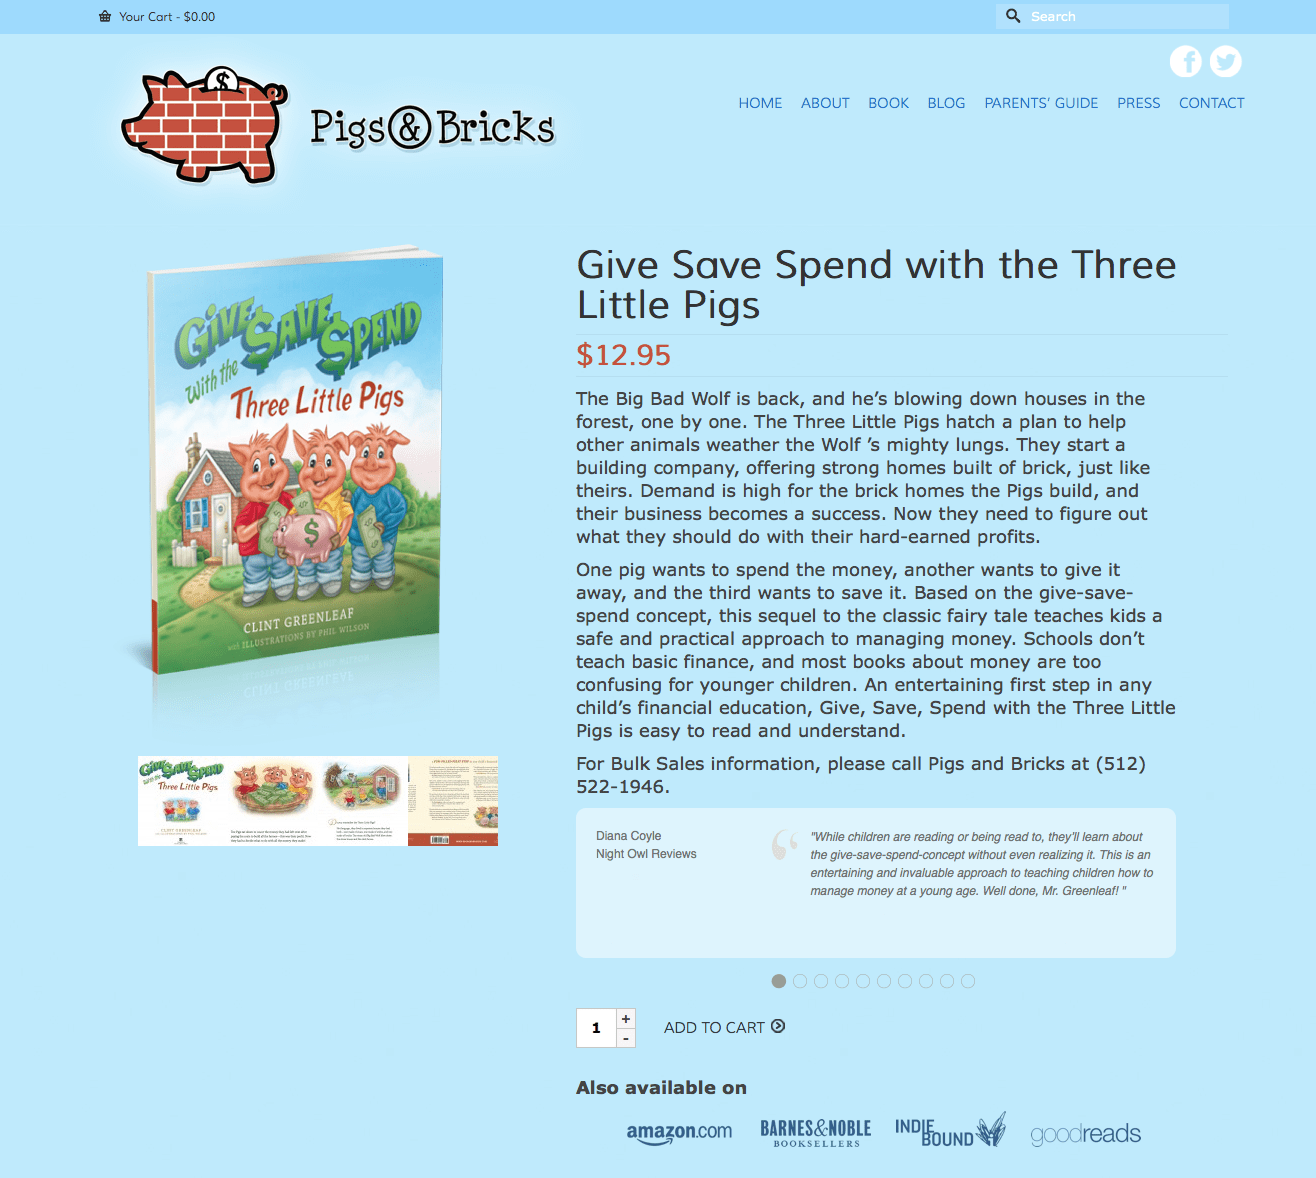 Give Save Spend with the Three Little Pigs | Pigs & Bricks (20140507)